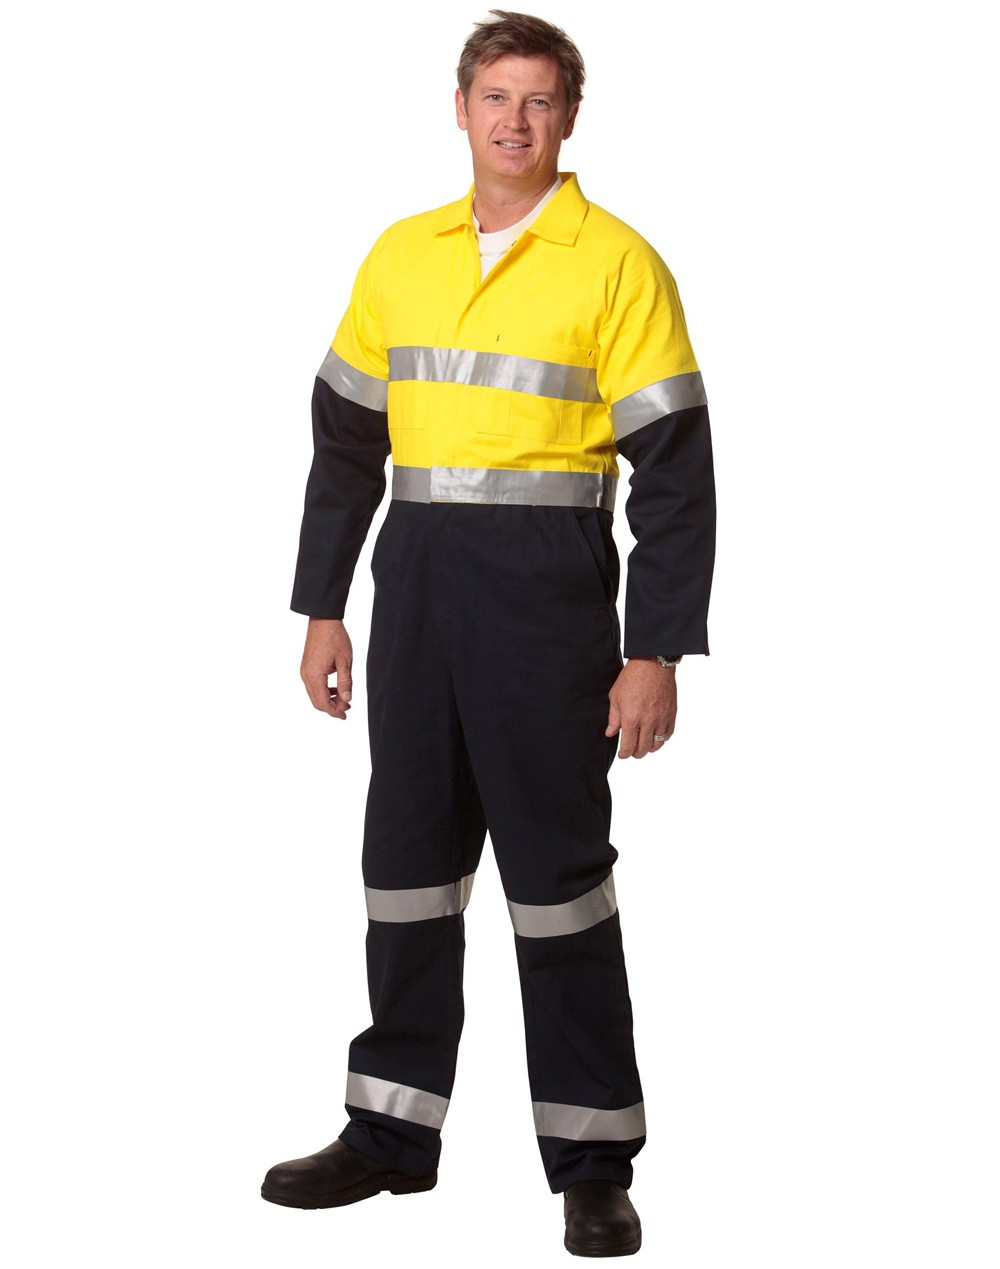 Winning Spirit Men's Cotton Drill Coverall with 3M Scotchlite Reflective Tapes